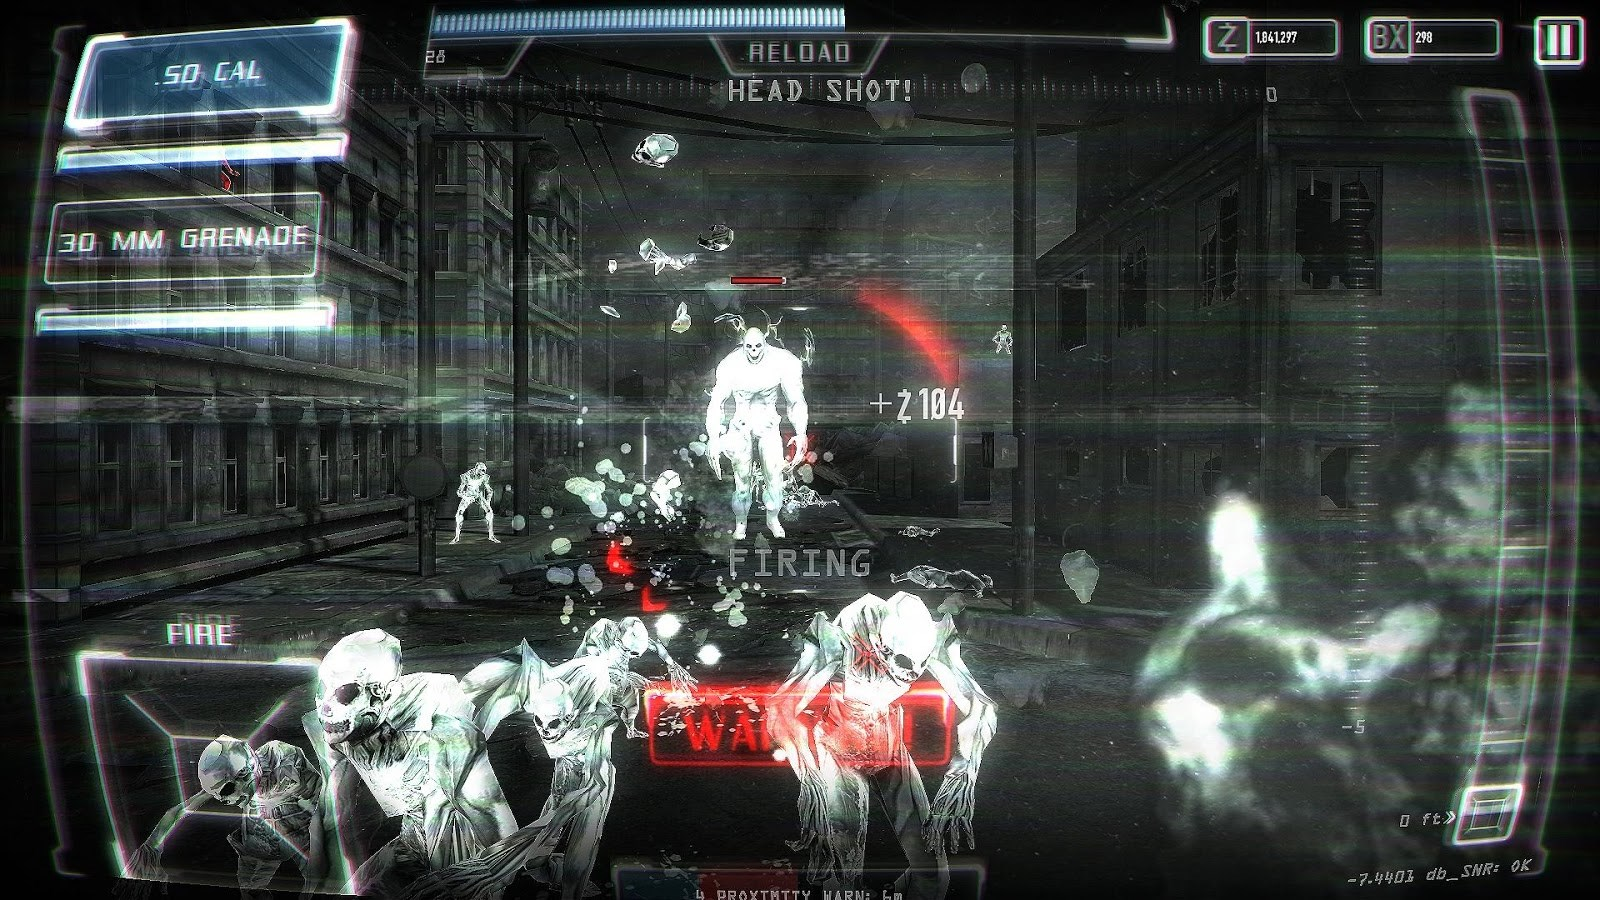 Gunner Z - Imagem 1 do software